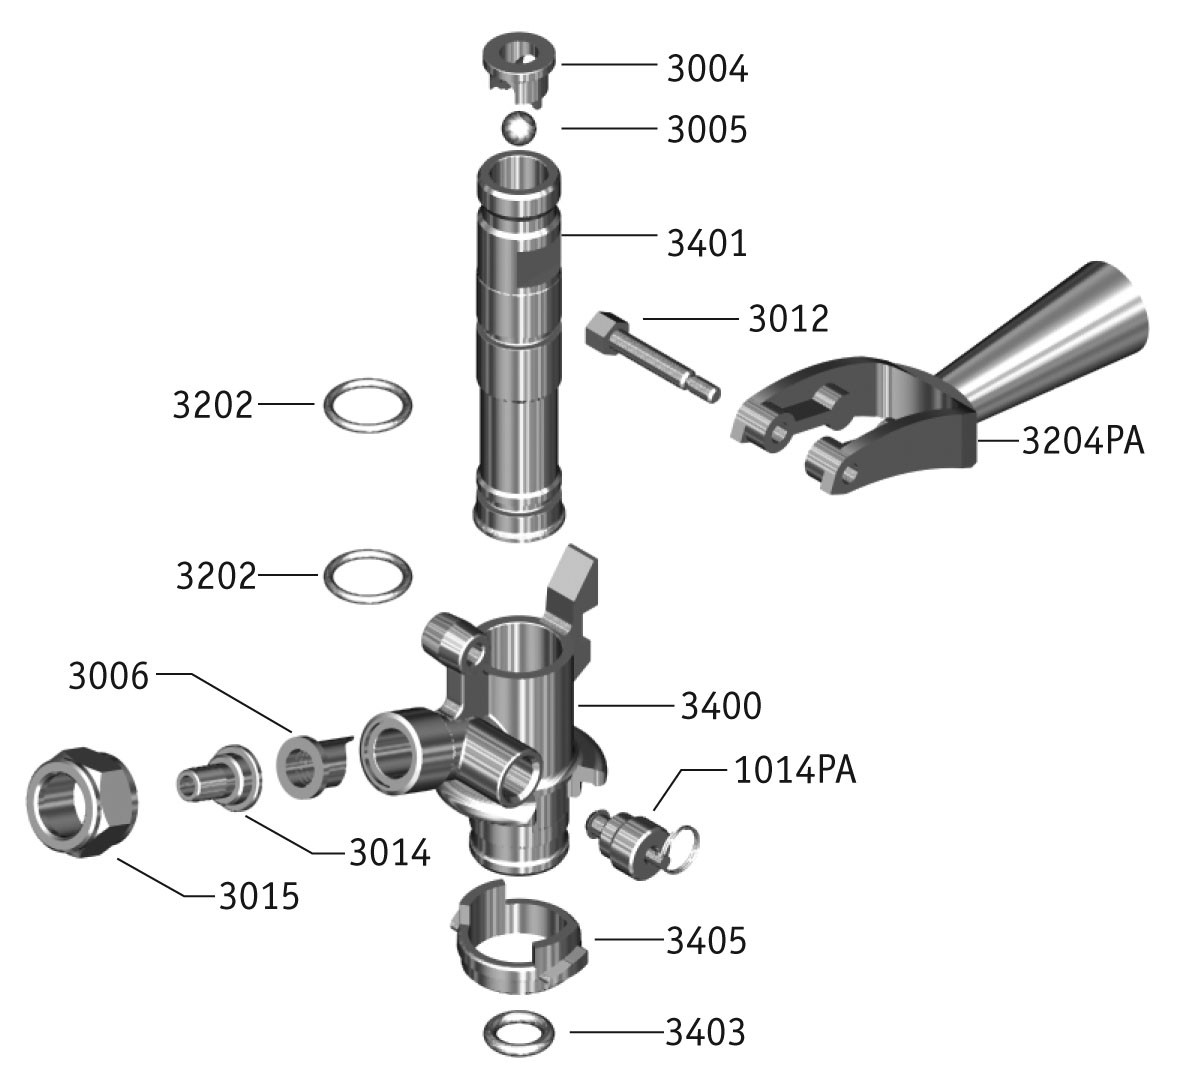 U U0026 39  System Keg Couplers Exploded View